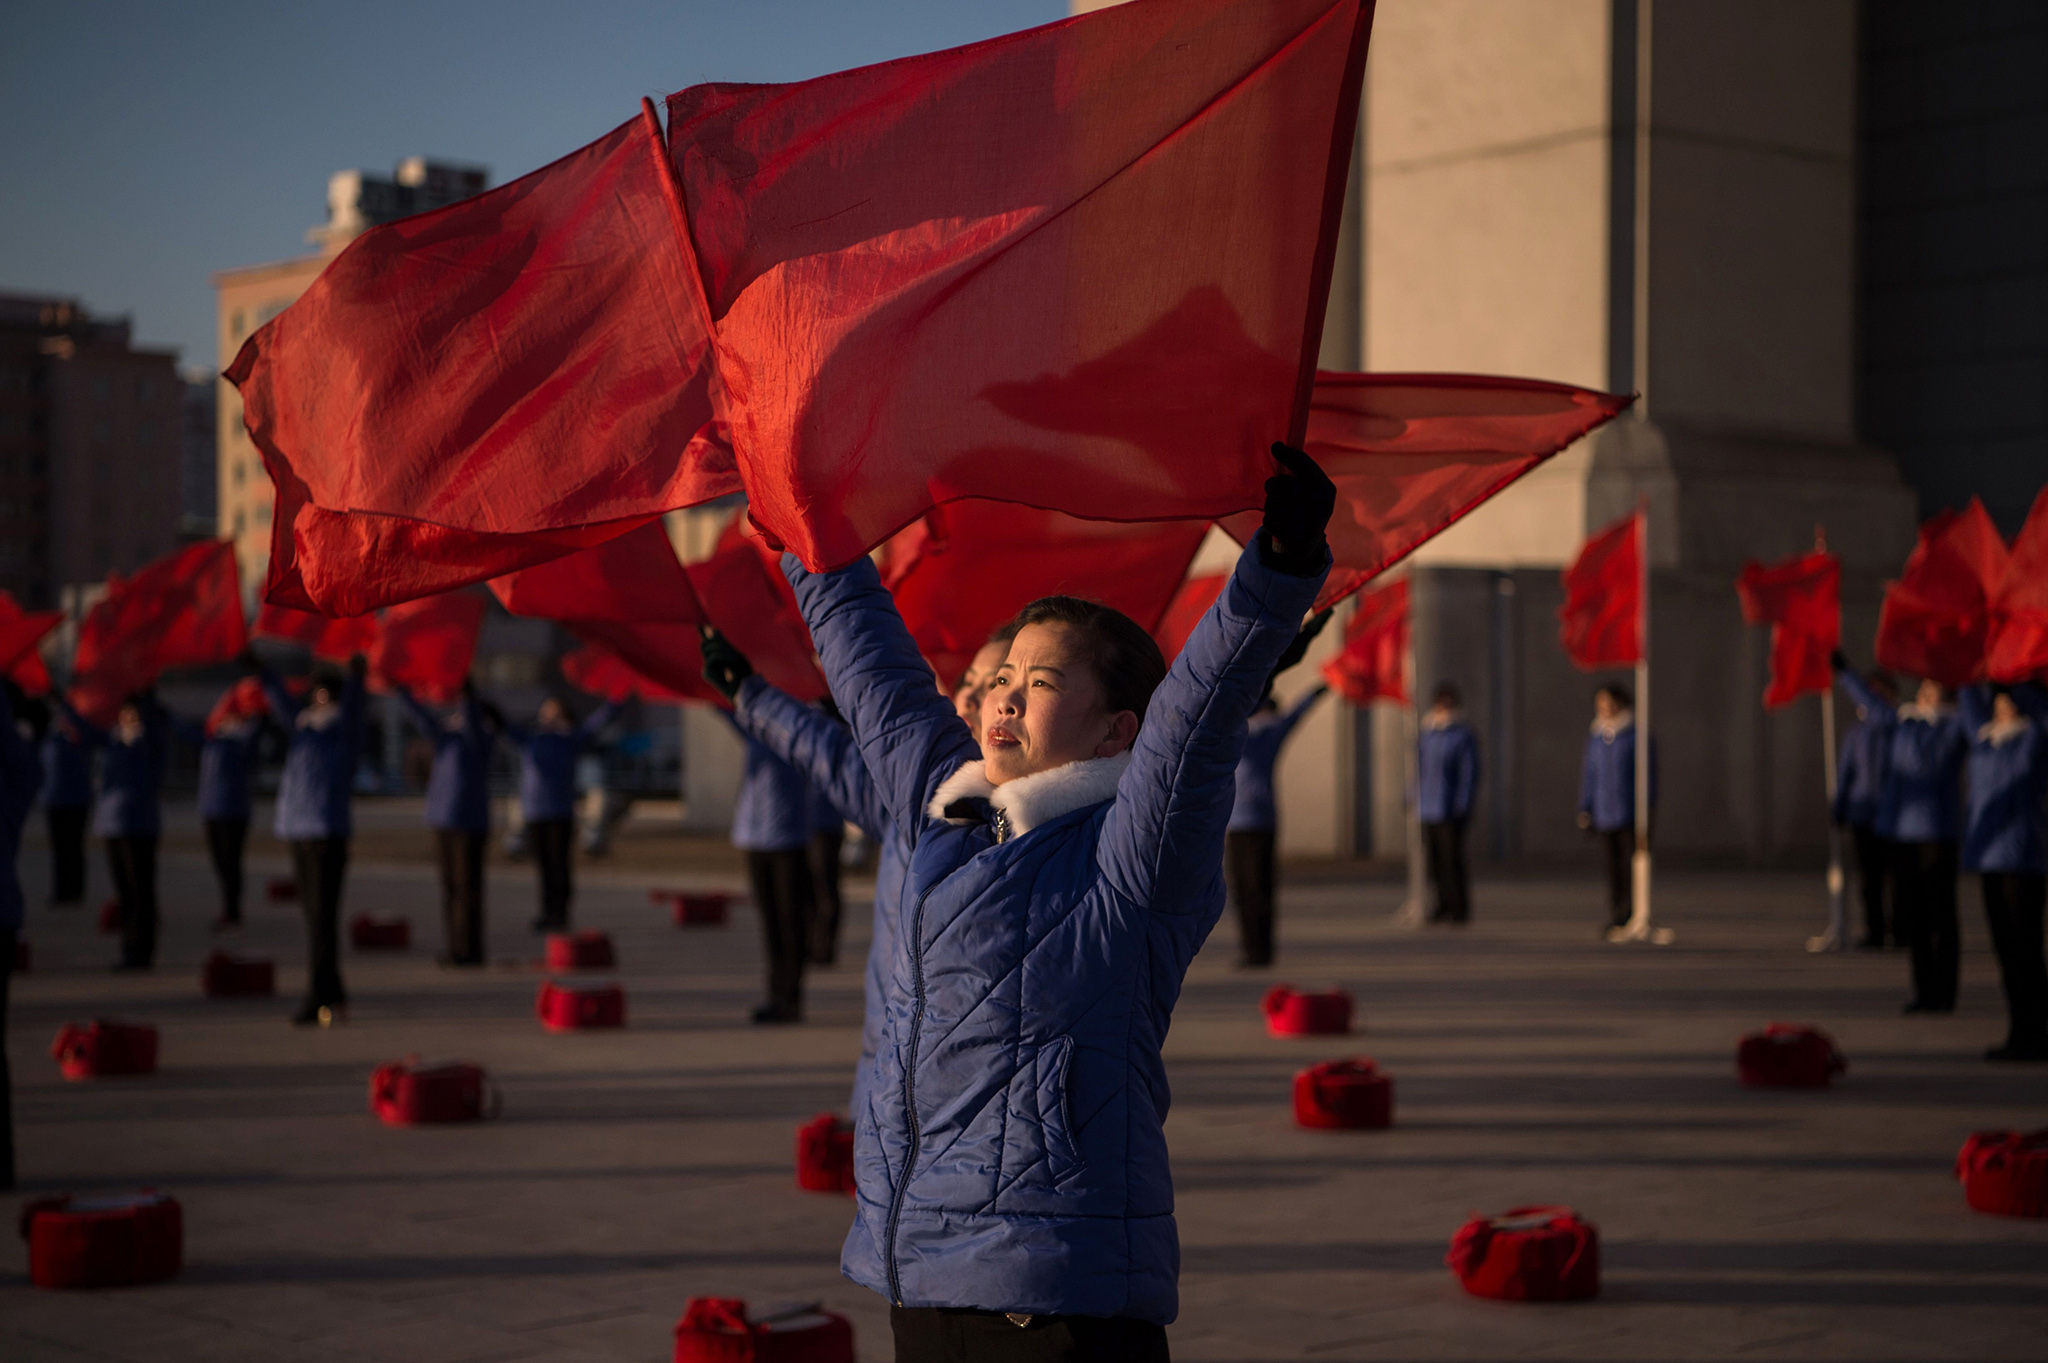 A propaganda troupe perform before the Arch of Triumph on the last day of the 200-day campaign in Pyongyang on December 15, 2016. North Korea wrapped up a 200-day mass mobilisation campaign aimed at boosting an economy struggling with upgraded UN sanctions imposed after its two nuclear tests this year. Coming hard on the heels of a similar 70-day campaign that ended in May, the 200-day version kicked off in early June, pushing extra hours and working weekends.  / AFP PHOTO / KIM Won-JinKIM WON-JIN/AFP/Getty Images